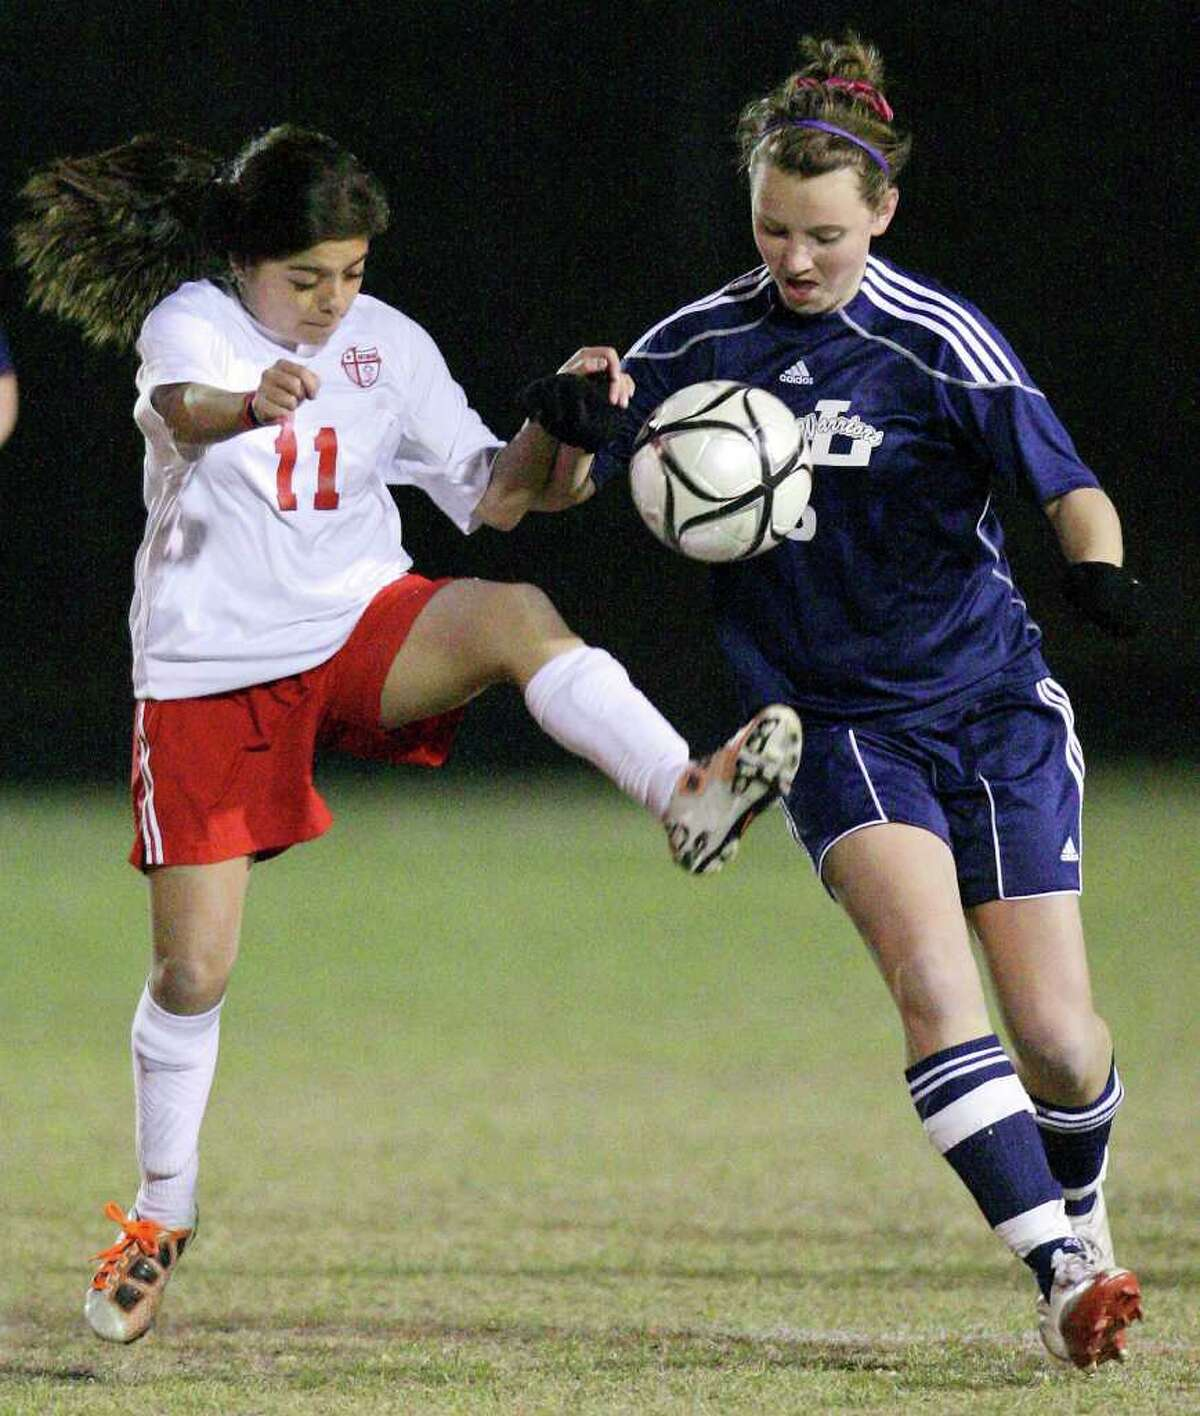 FOR SPORTS - Antonian's Pam Maldonado (left) and Argyle Liberty Christian's Lizzy Cook struggle for control of the ball Friday Feb. 11, 2011 at Antonian high school. Antonian won 2-1 in overtime. (PHOTO BY EDWARD A. ORNELAS/eaornelas@express-news.net)